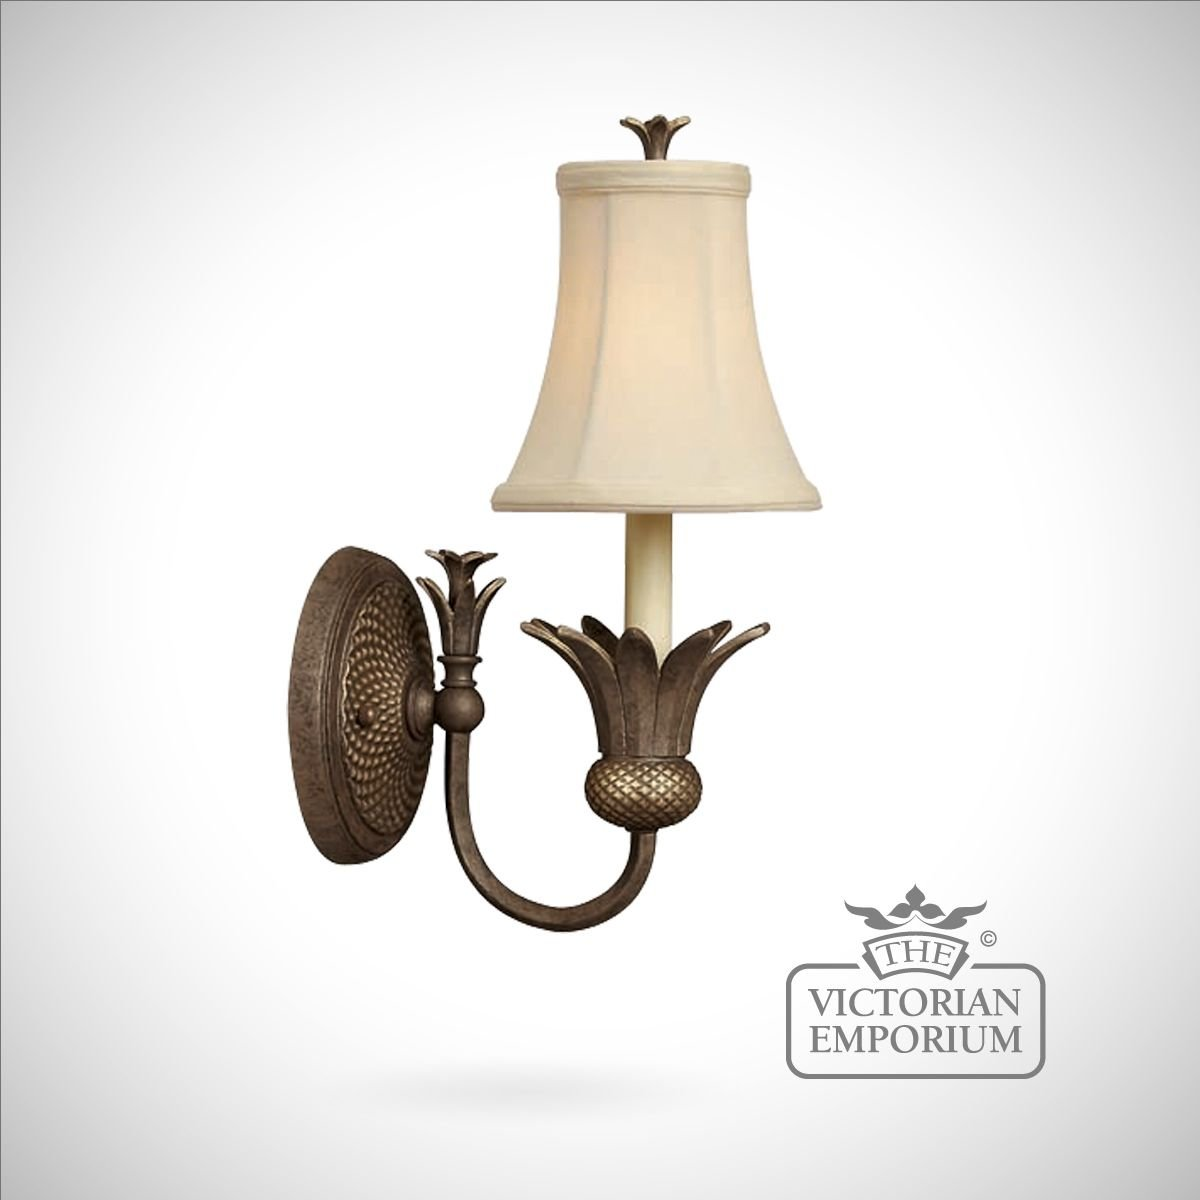 Plantation style wall sconce interior wall lights - Decorative wall scones ...